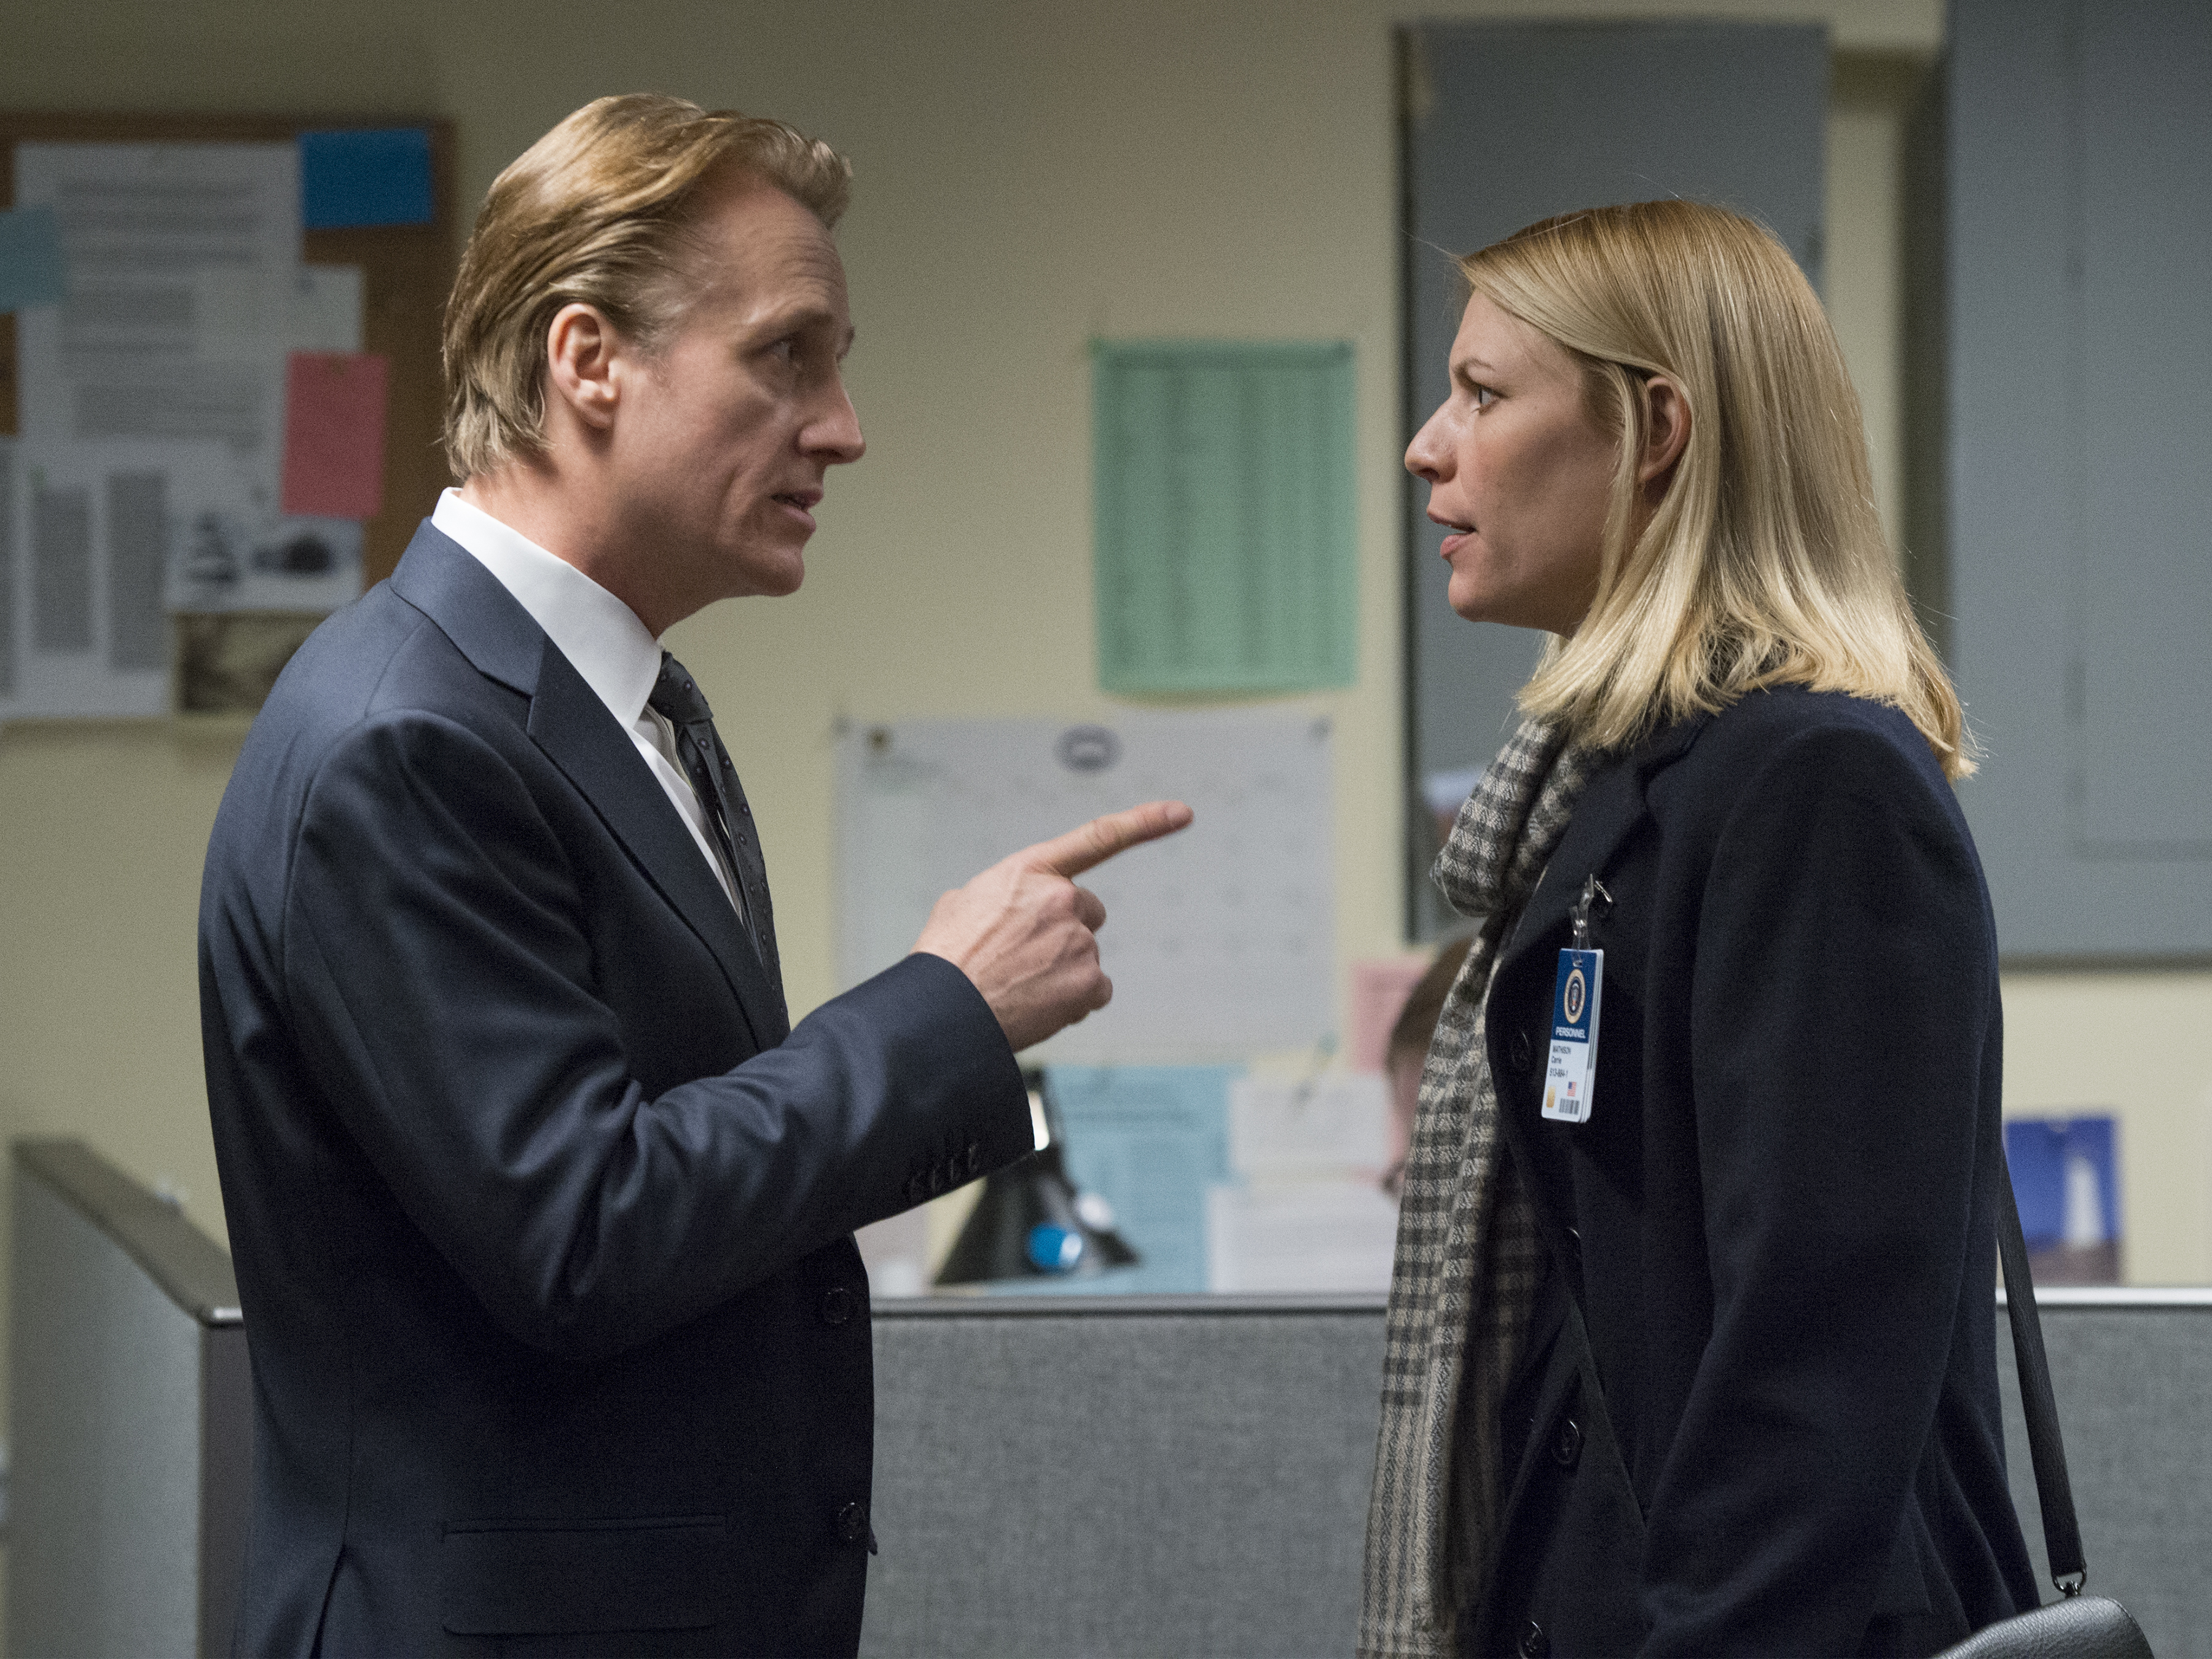 Linus Roache as David Wellington and Claire Danes as Carrie Mathison in HOMELAND (Season 6, Episode 12). - Photo: JoJo Whilden/SHOWTIME - Photo ID: HOMELAND_612_3226.R